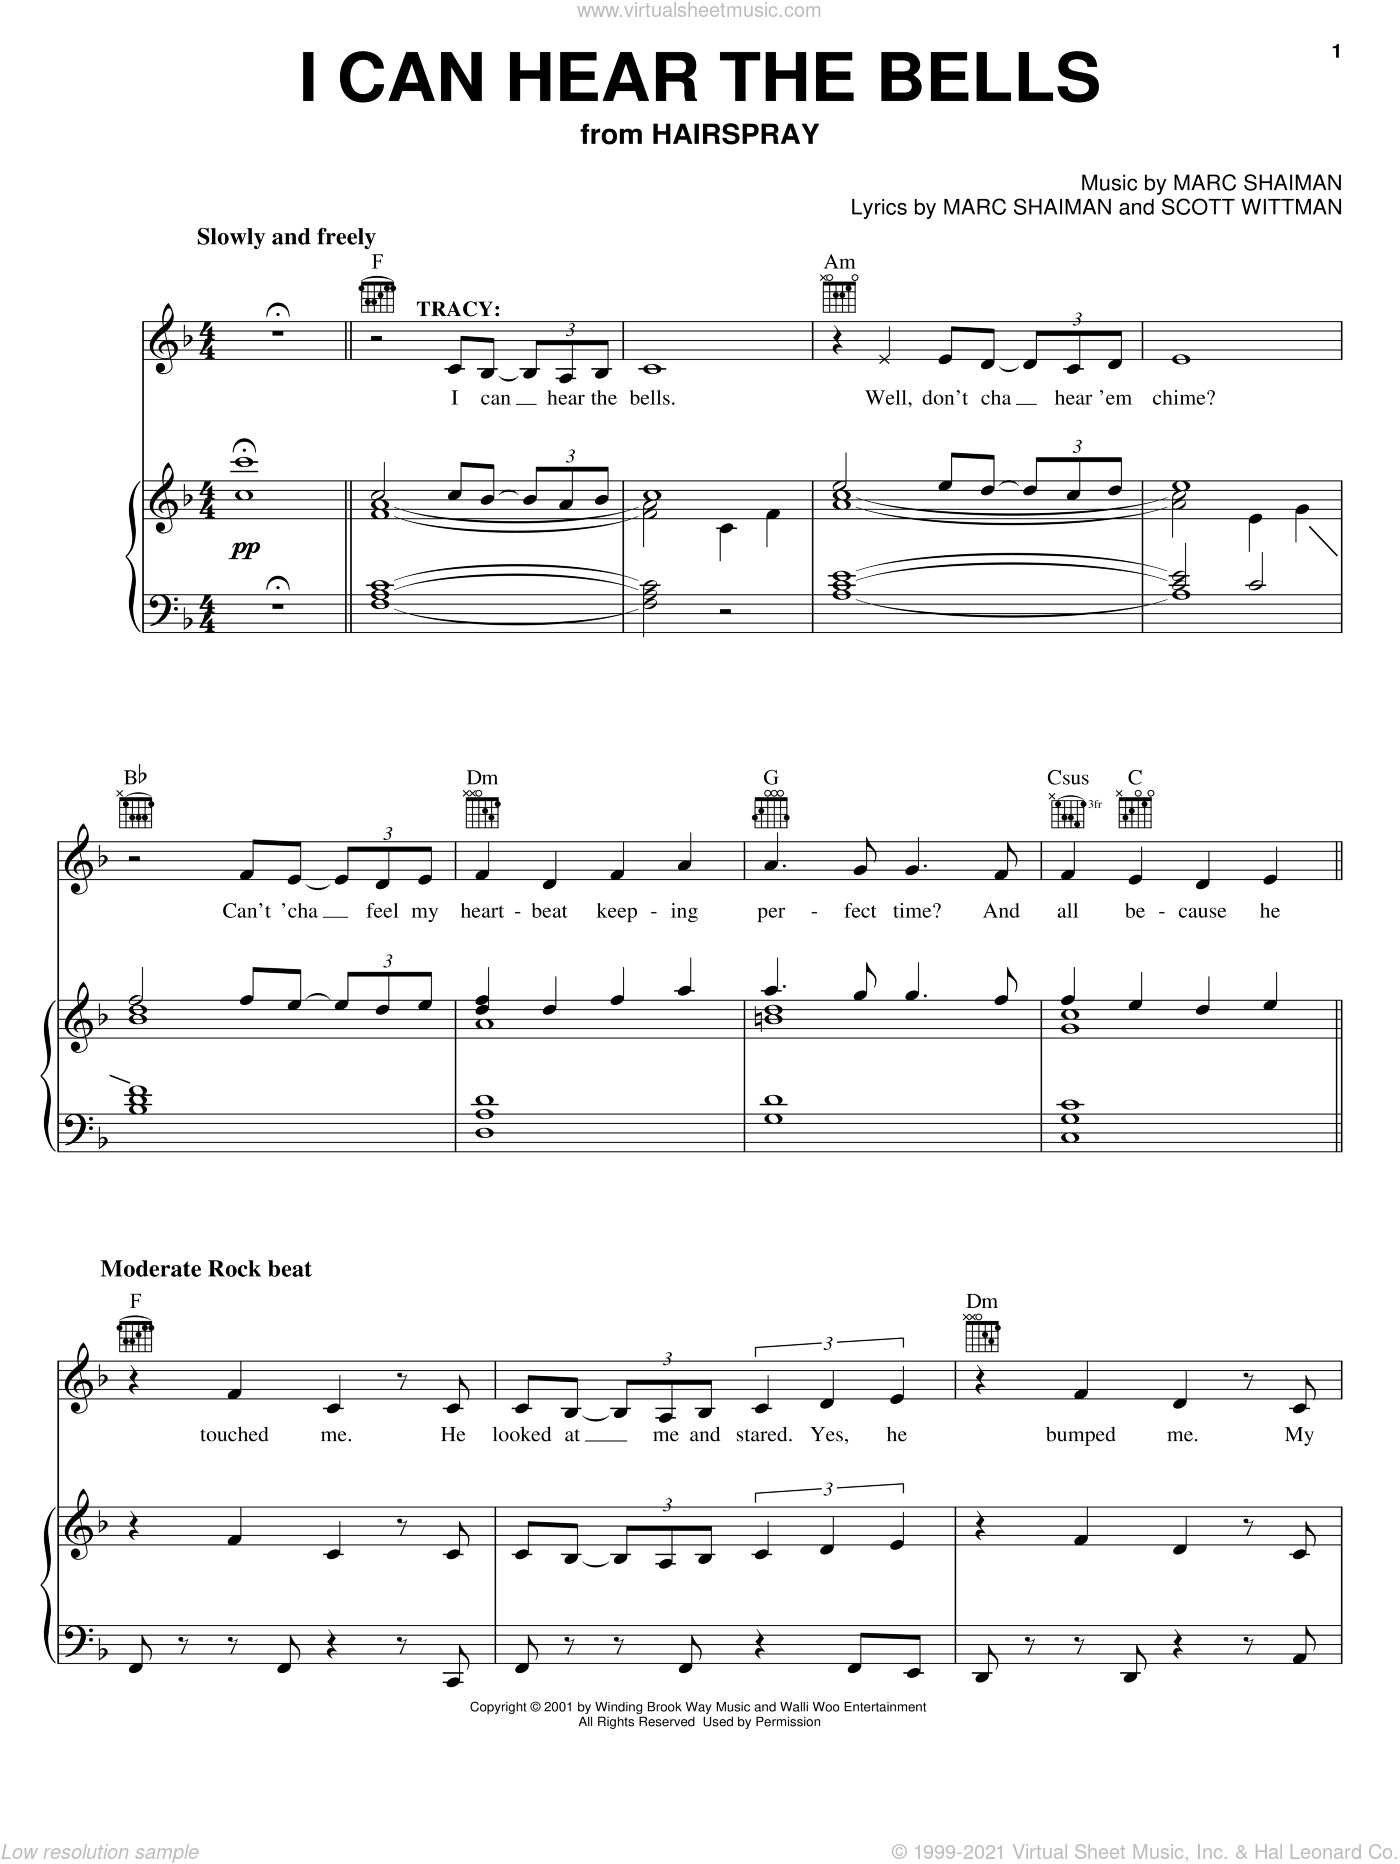 I Can Hear The Bells sheet music for voice, piano or guitar by Marc Shaiman, Hairspray (Musical) and Scott Wittman, intermediate skill level